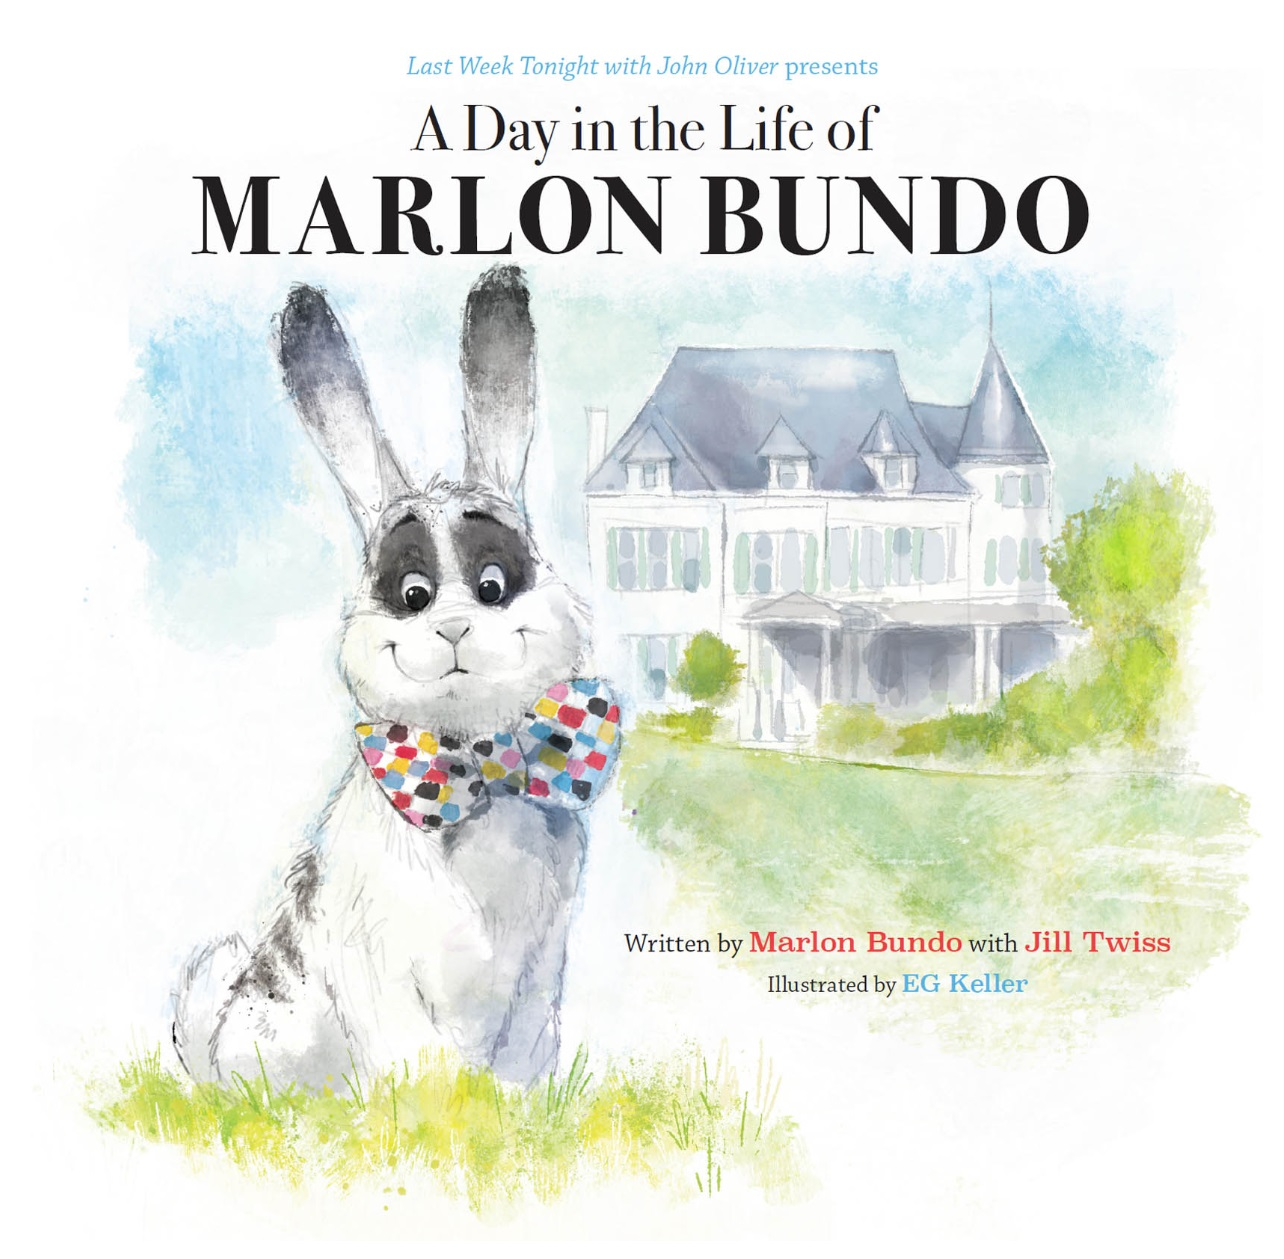 Children's book about Mike Pence's bunny sells out